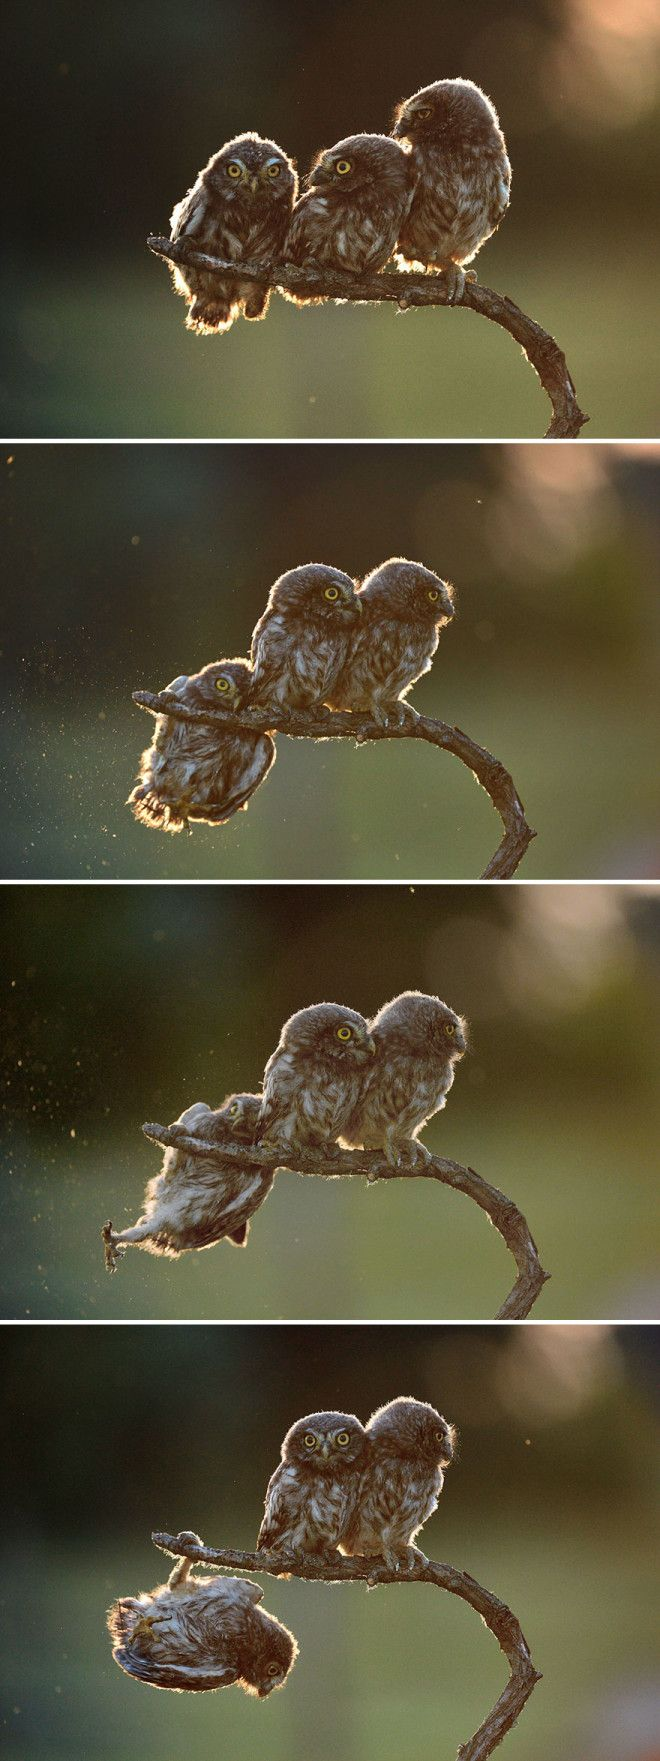 Overall Winner 2017 Help And Winner Of Amazing Internet Portfolio Prize Tibor Kerccz For His Sequence Of 4 Owl Images